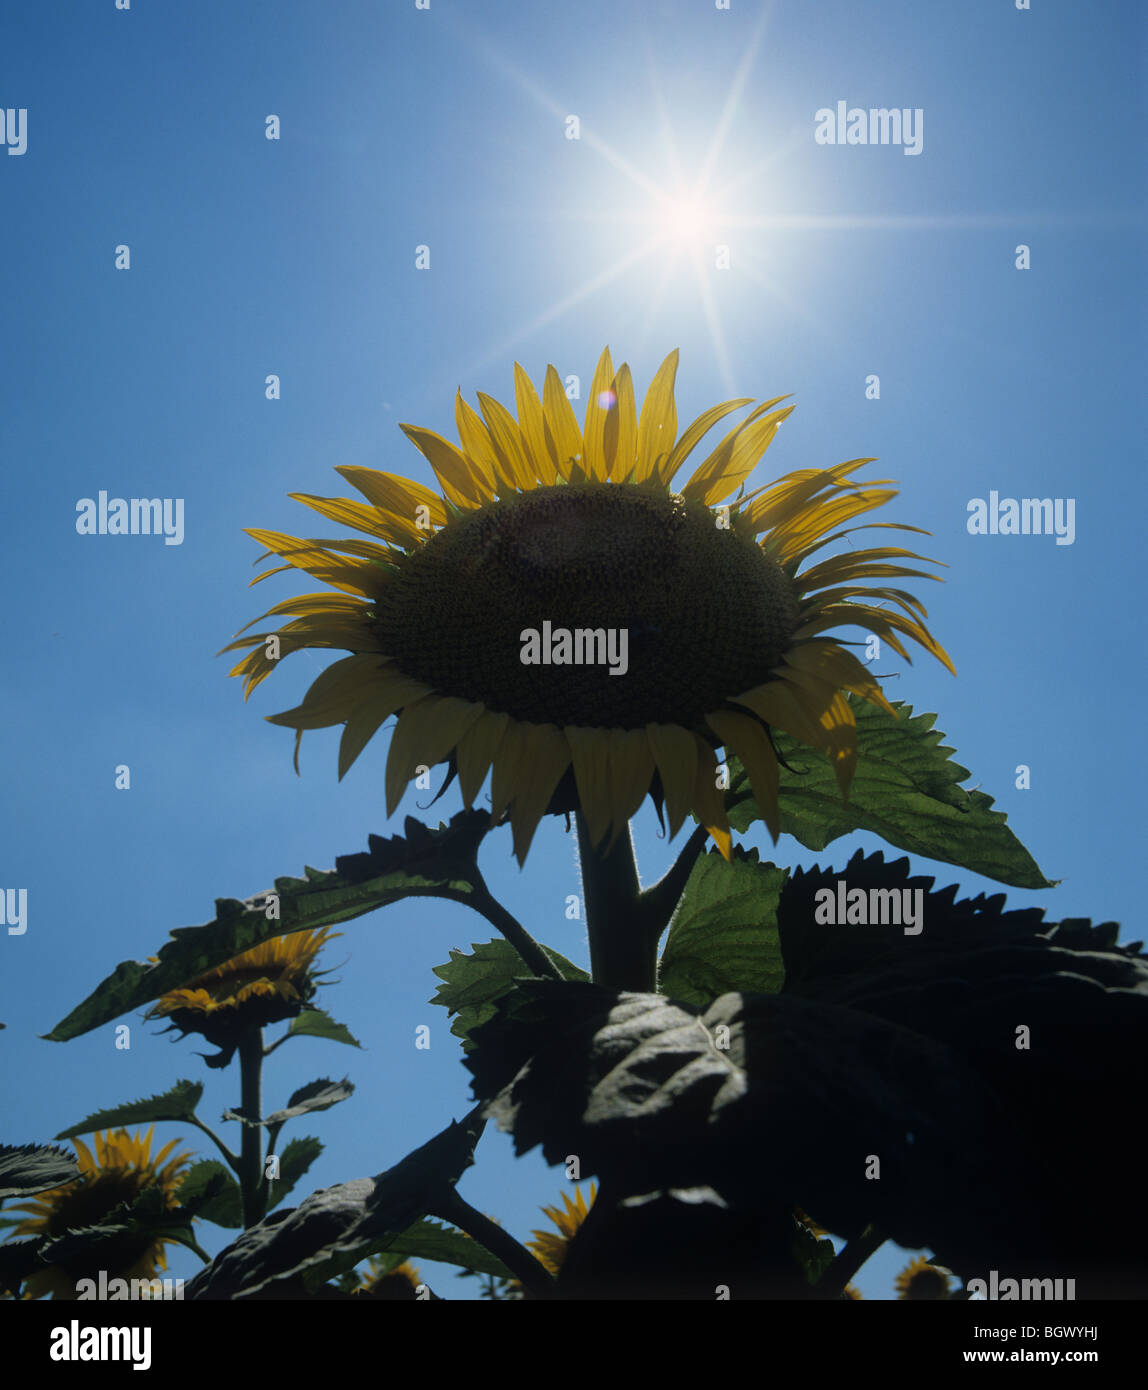 Sunflower head against a bright summer sun and a dark ble sky, Tuscany, Italy - Stock Image